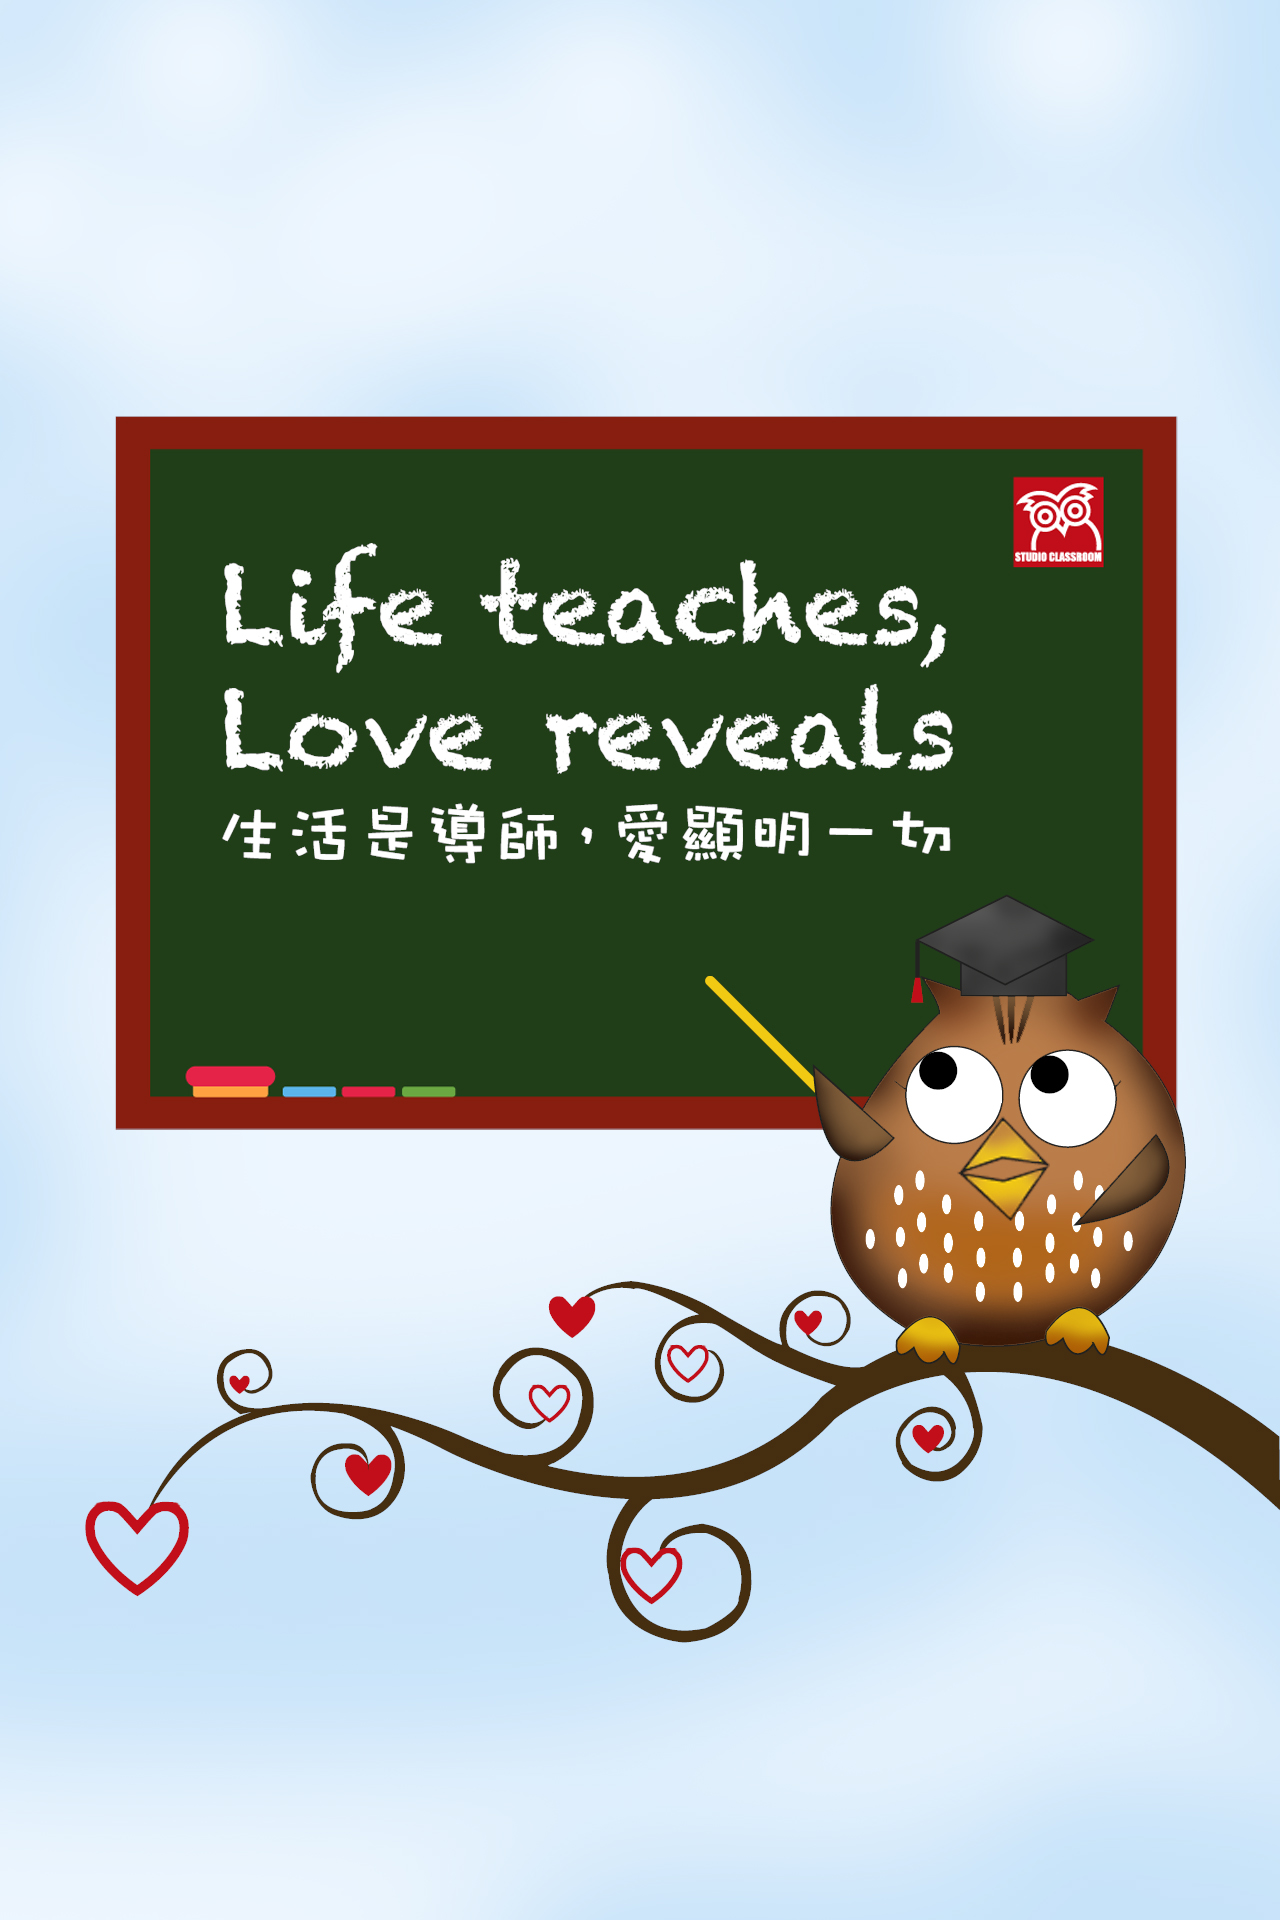 Life teaches, love reveals